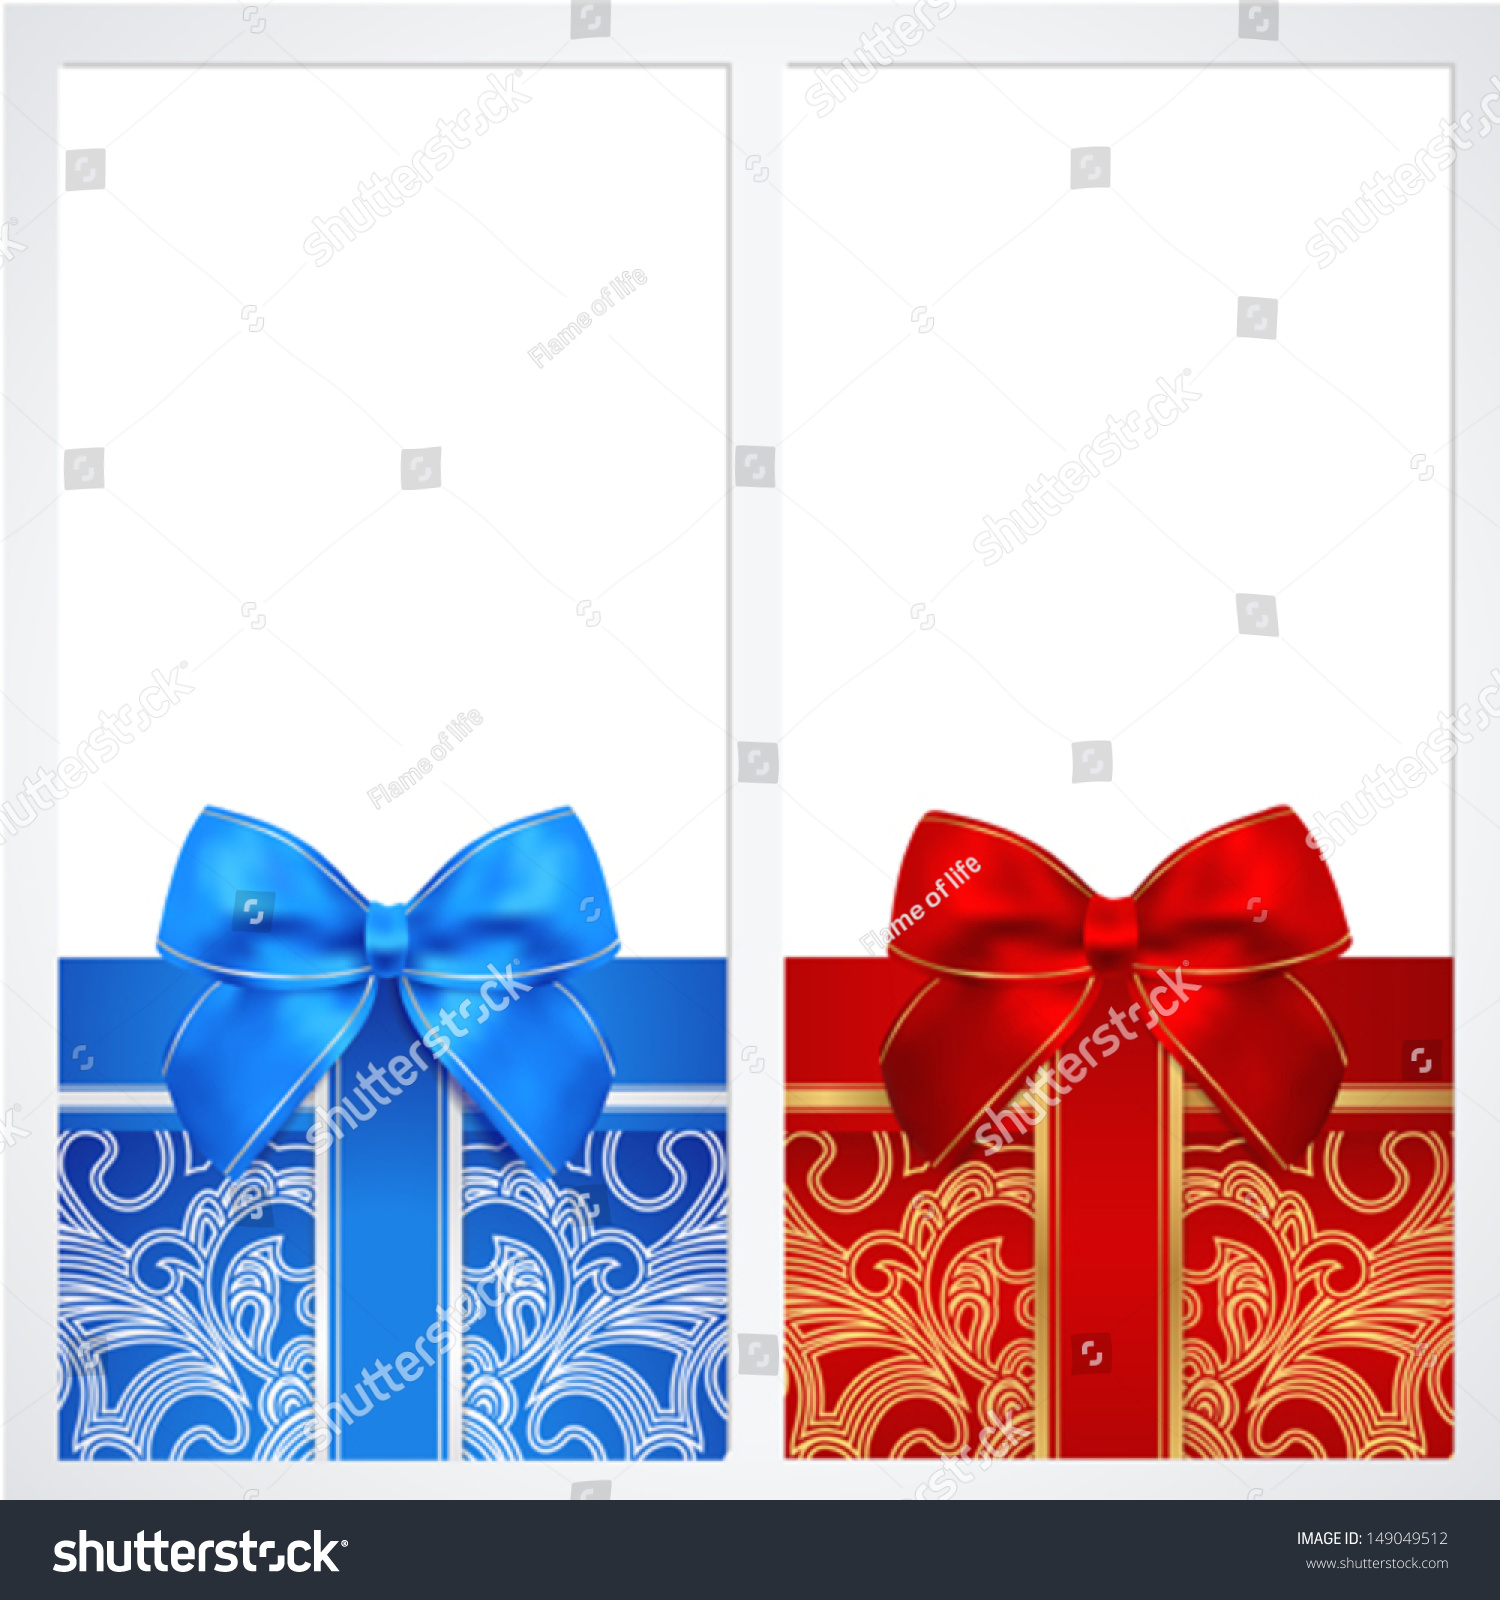 Voucher gift certificate coupon template bow stock vector voucher gift certificate coupon template with bow ribbons present background yadclub Image collections